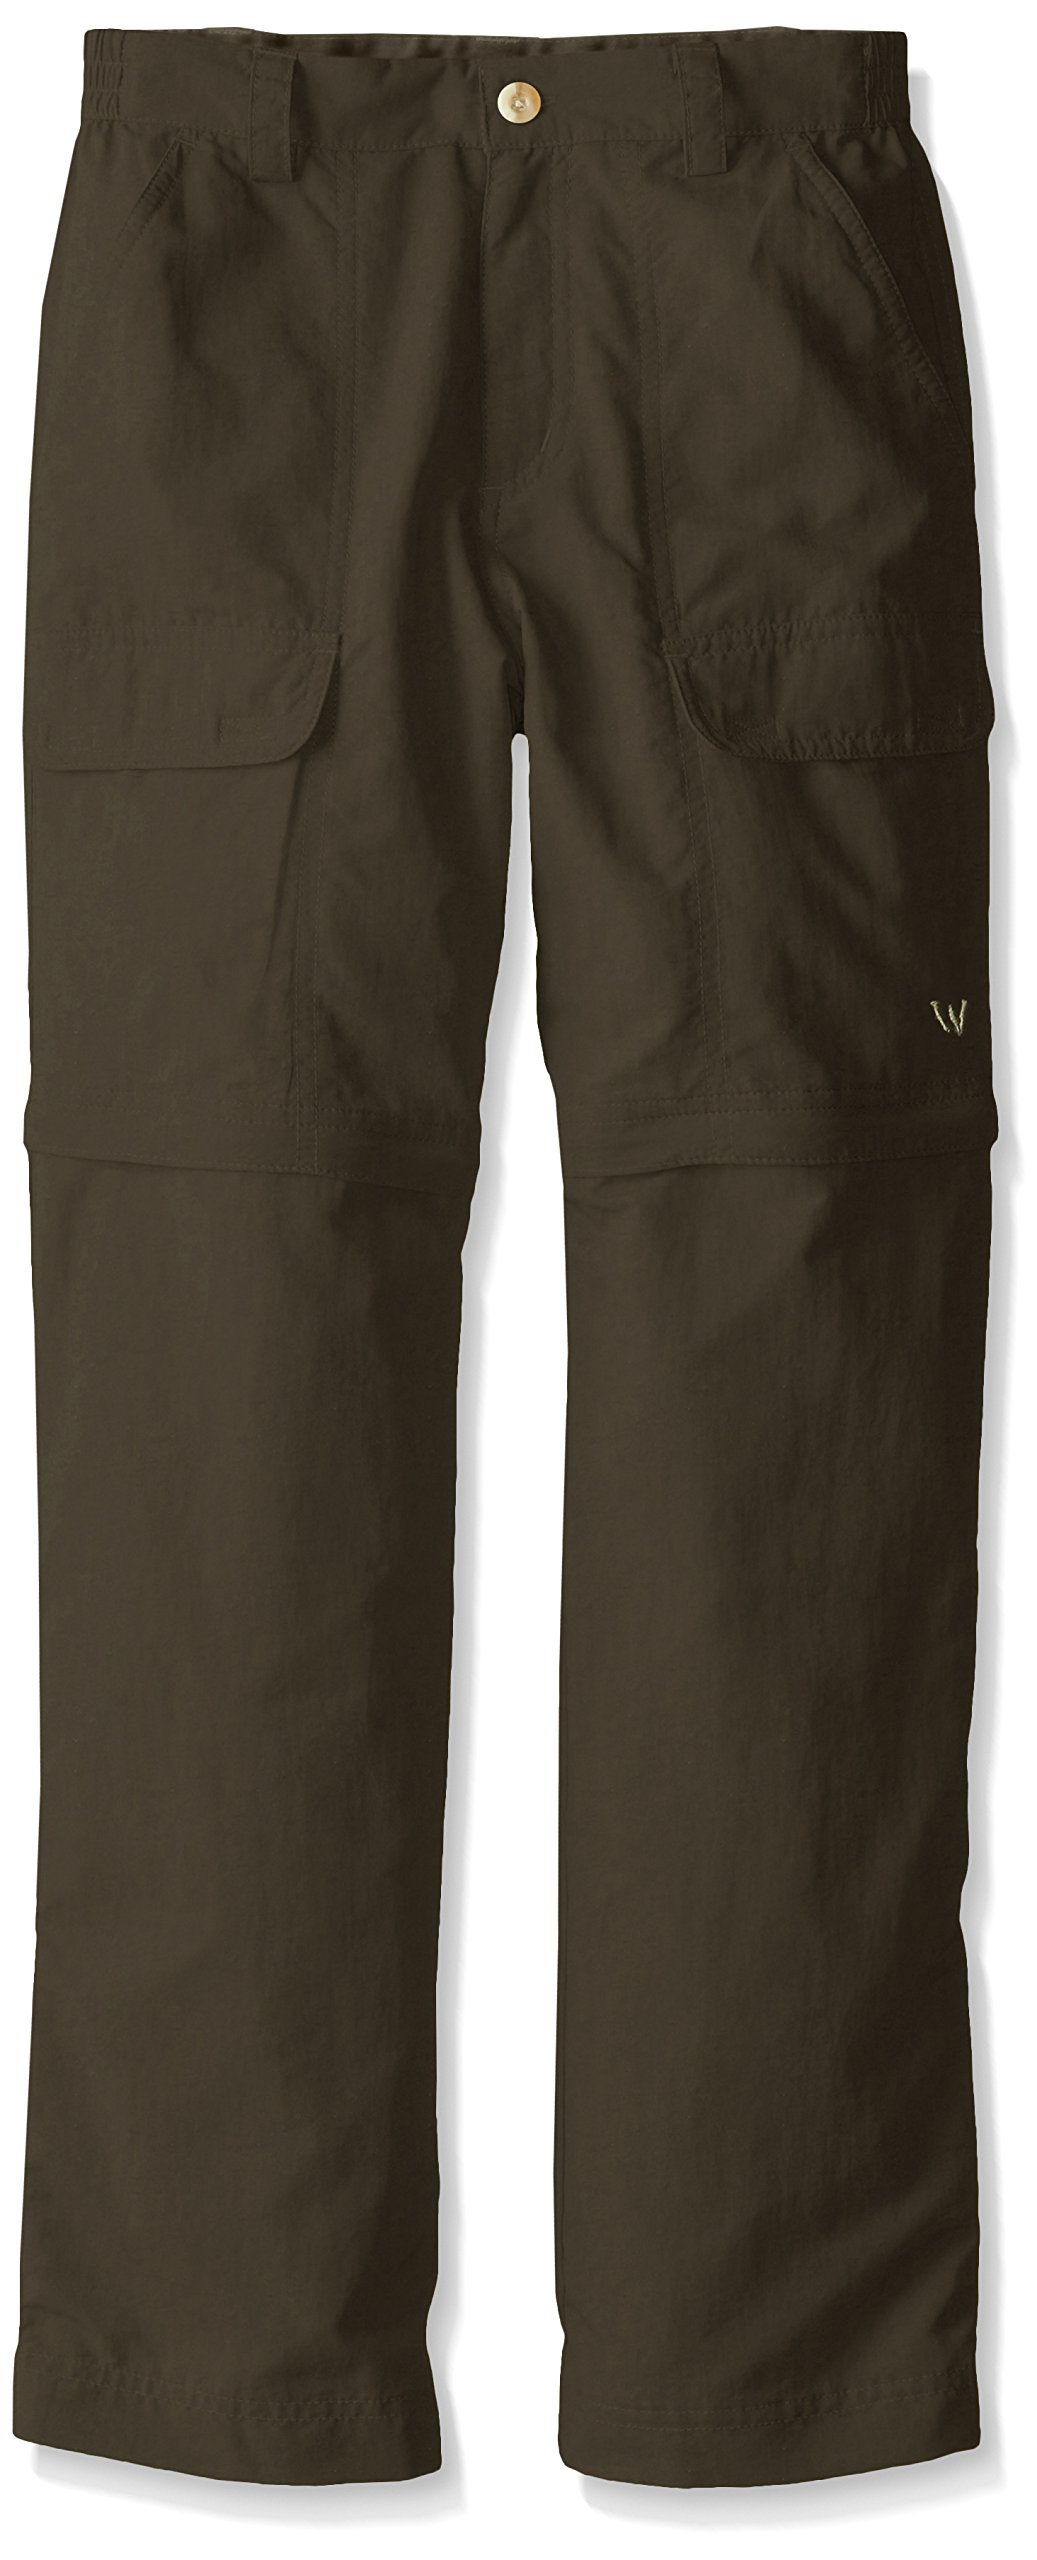 White Sierra Youth Trail Convertible Pants, Dark Sage, Large by White Sierra